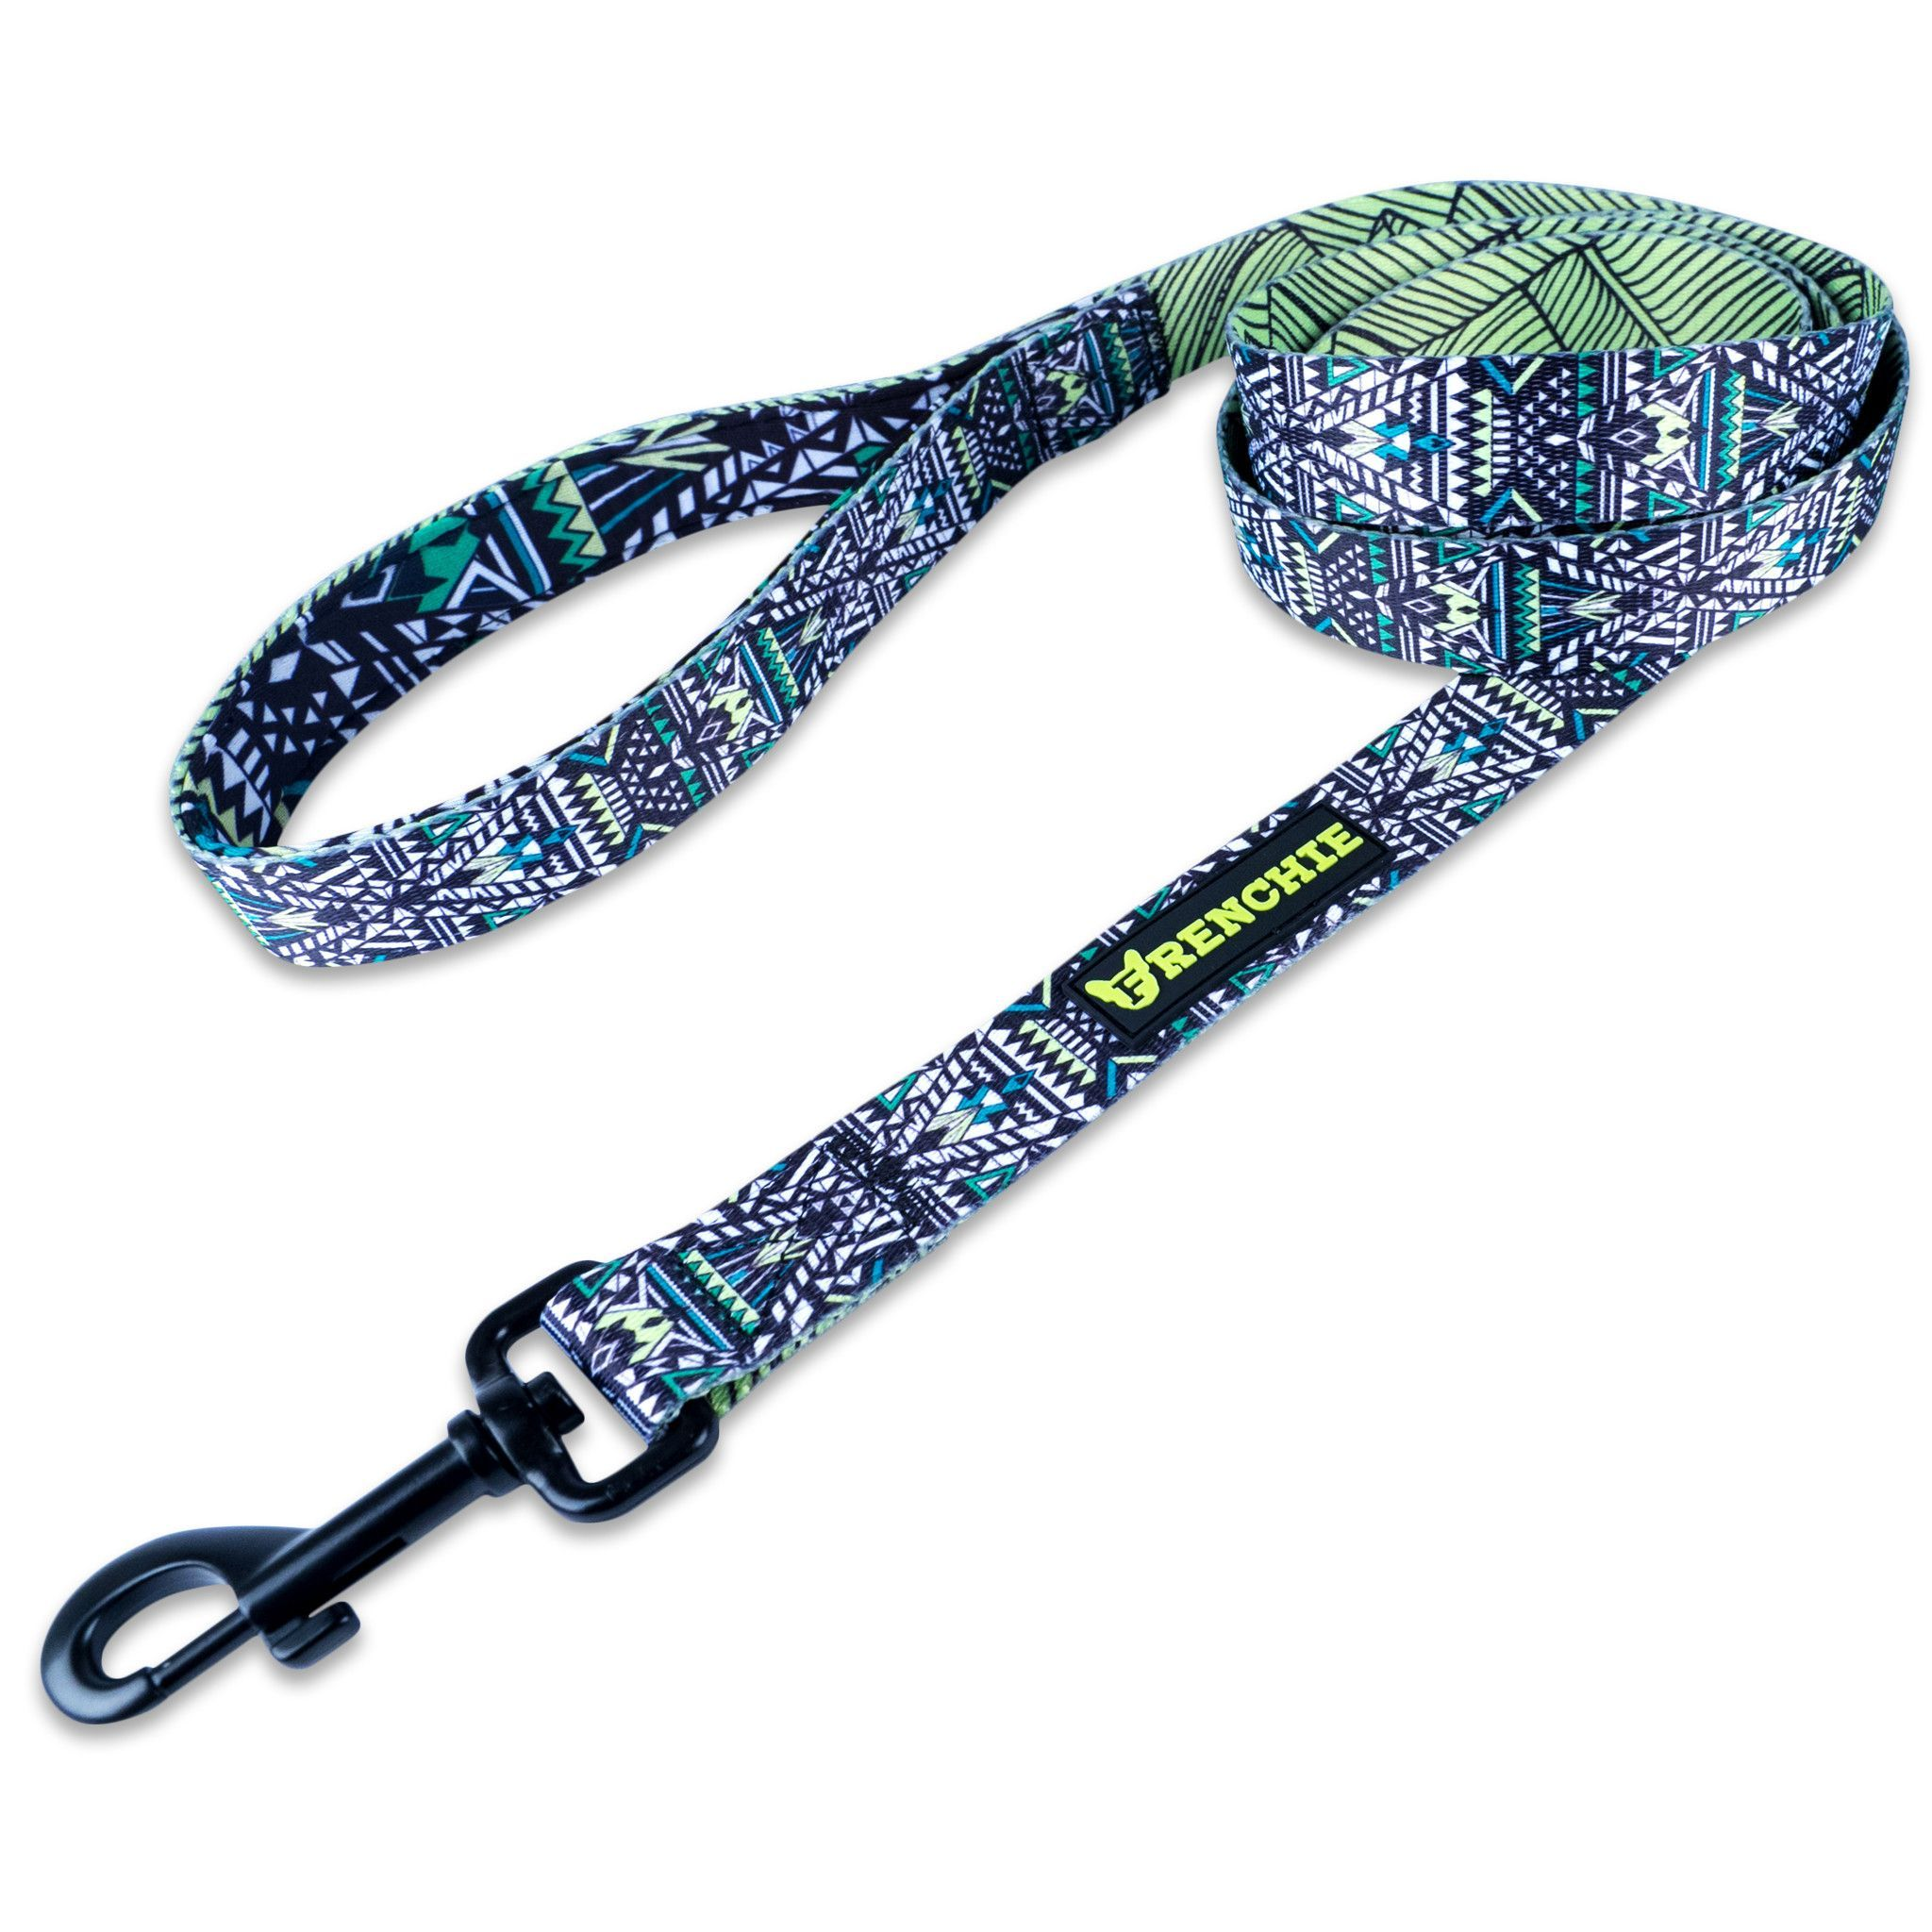 The Frenchie Comfort Leash - JURASSIC from FRENCHIE BULLDOG